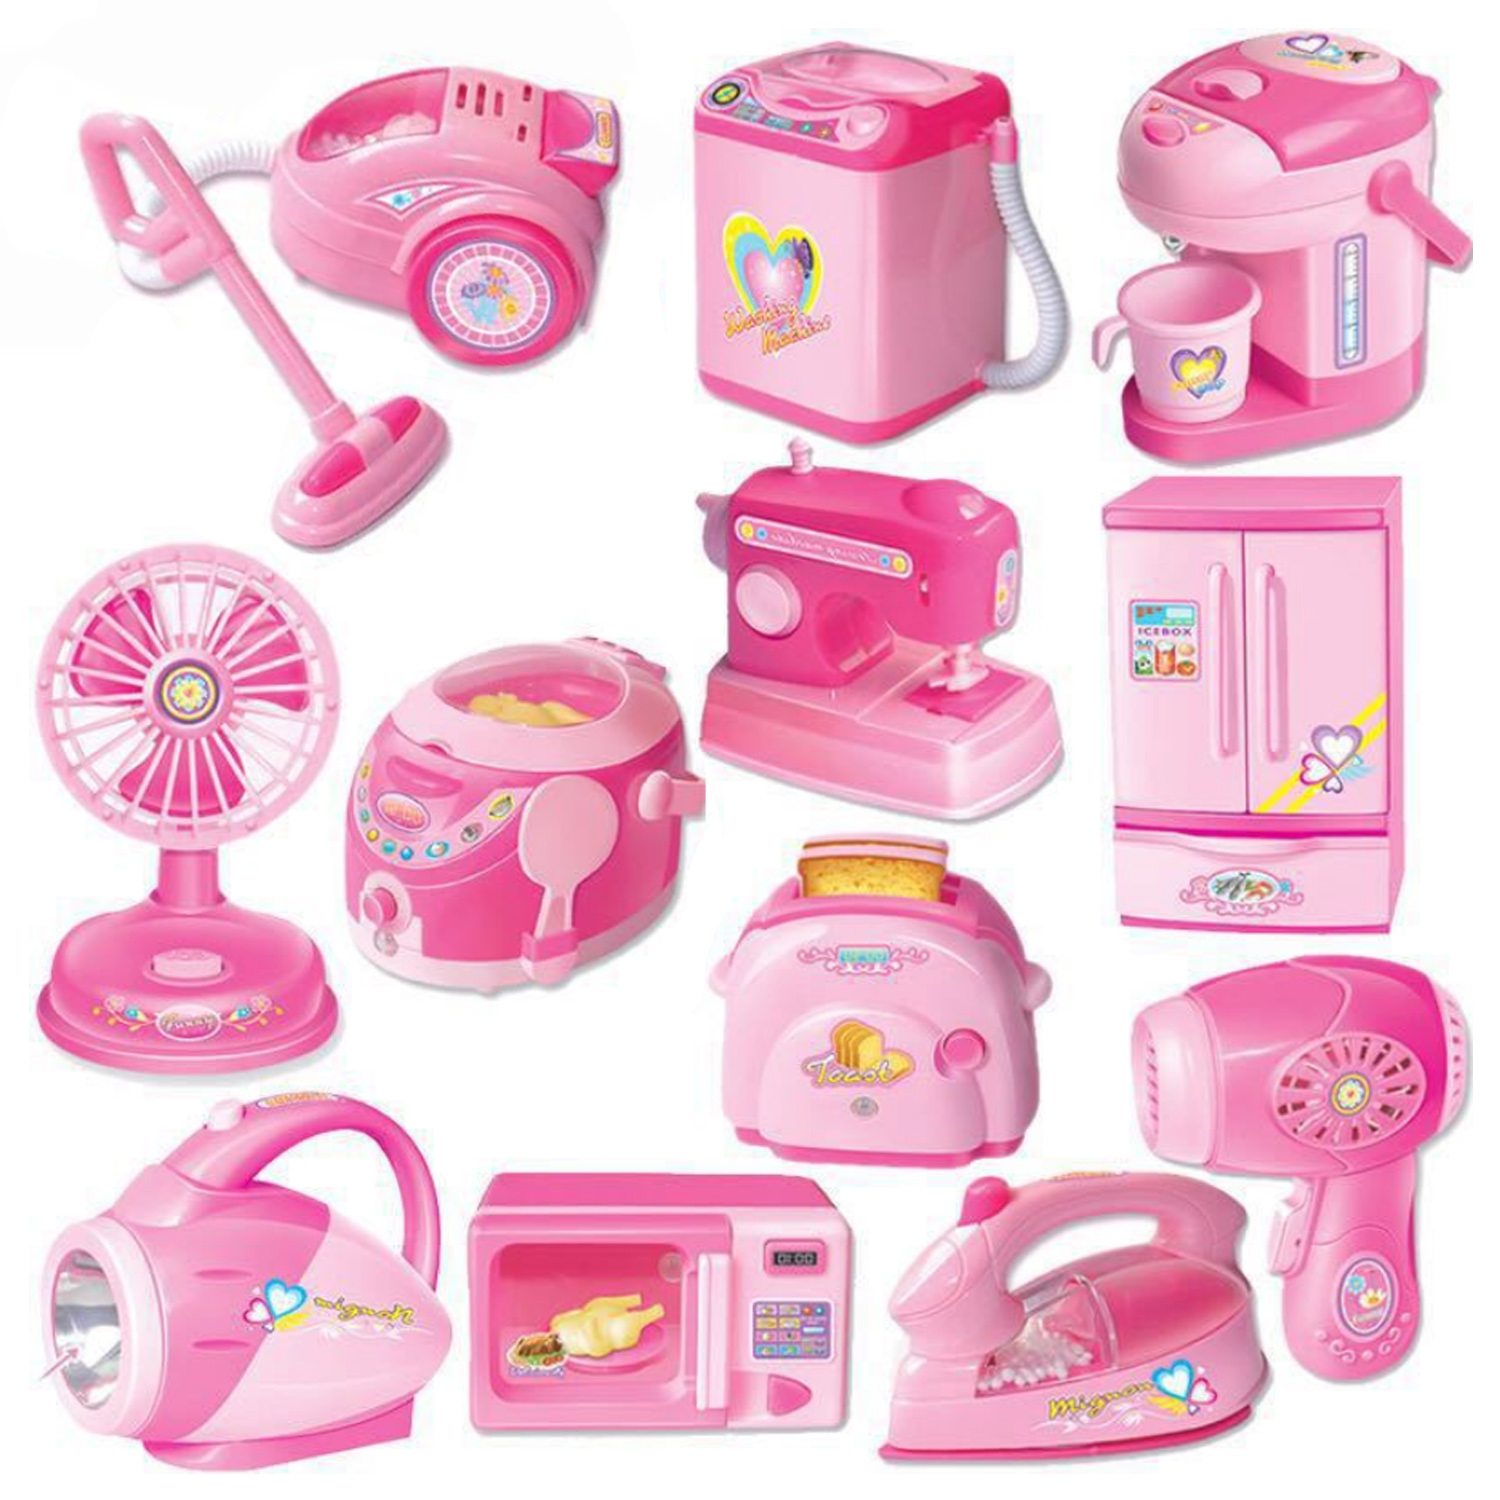 12pcs Kid DIY Mini Home Appliance Set Household Appliances Electric Iron Toaster Vacuum Cleaner Washing Machine Pretend Play Toy